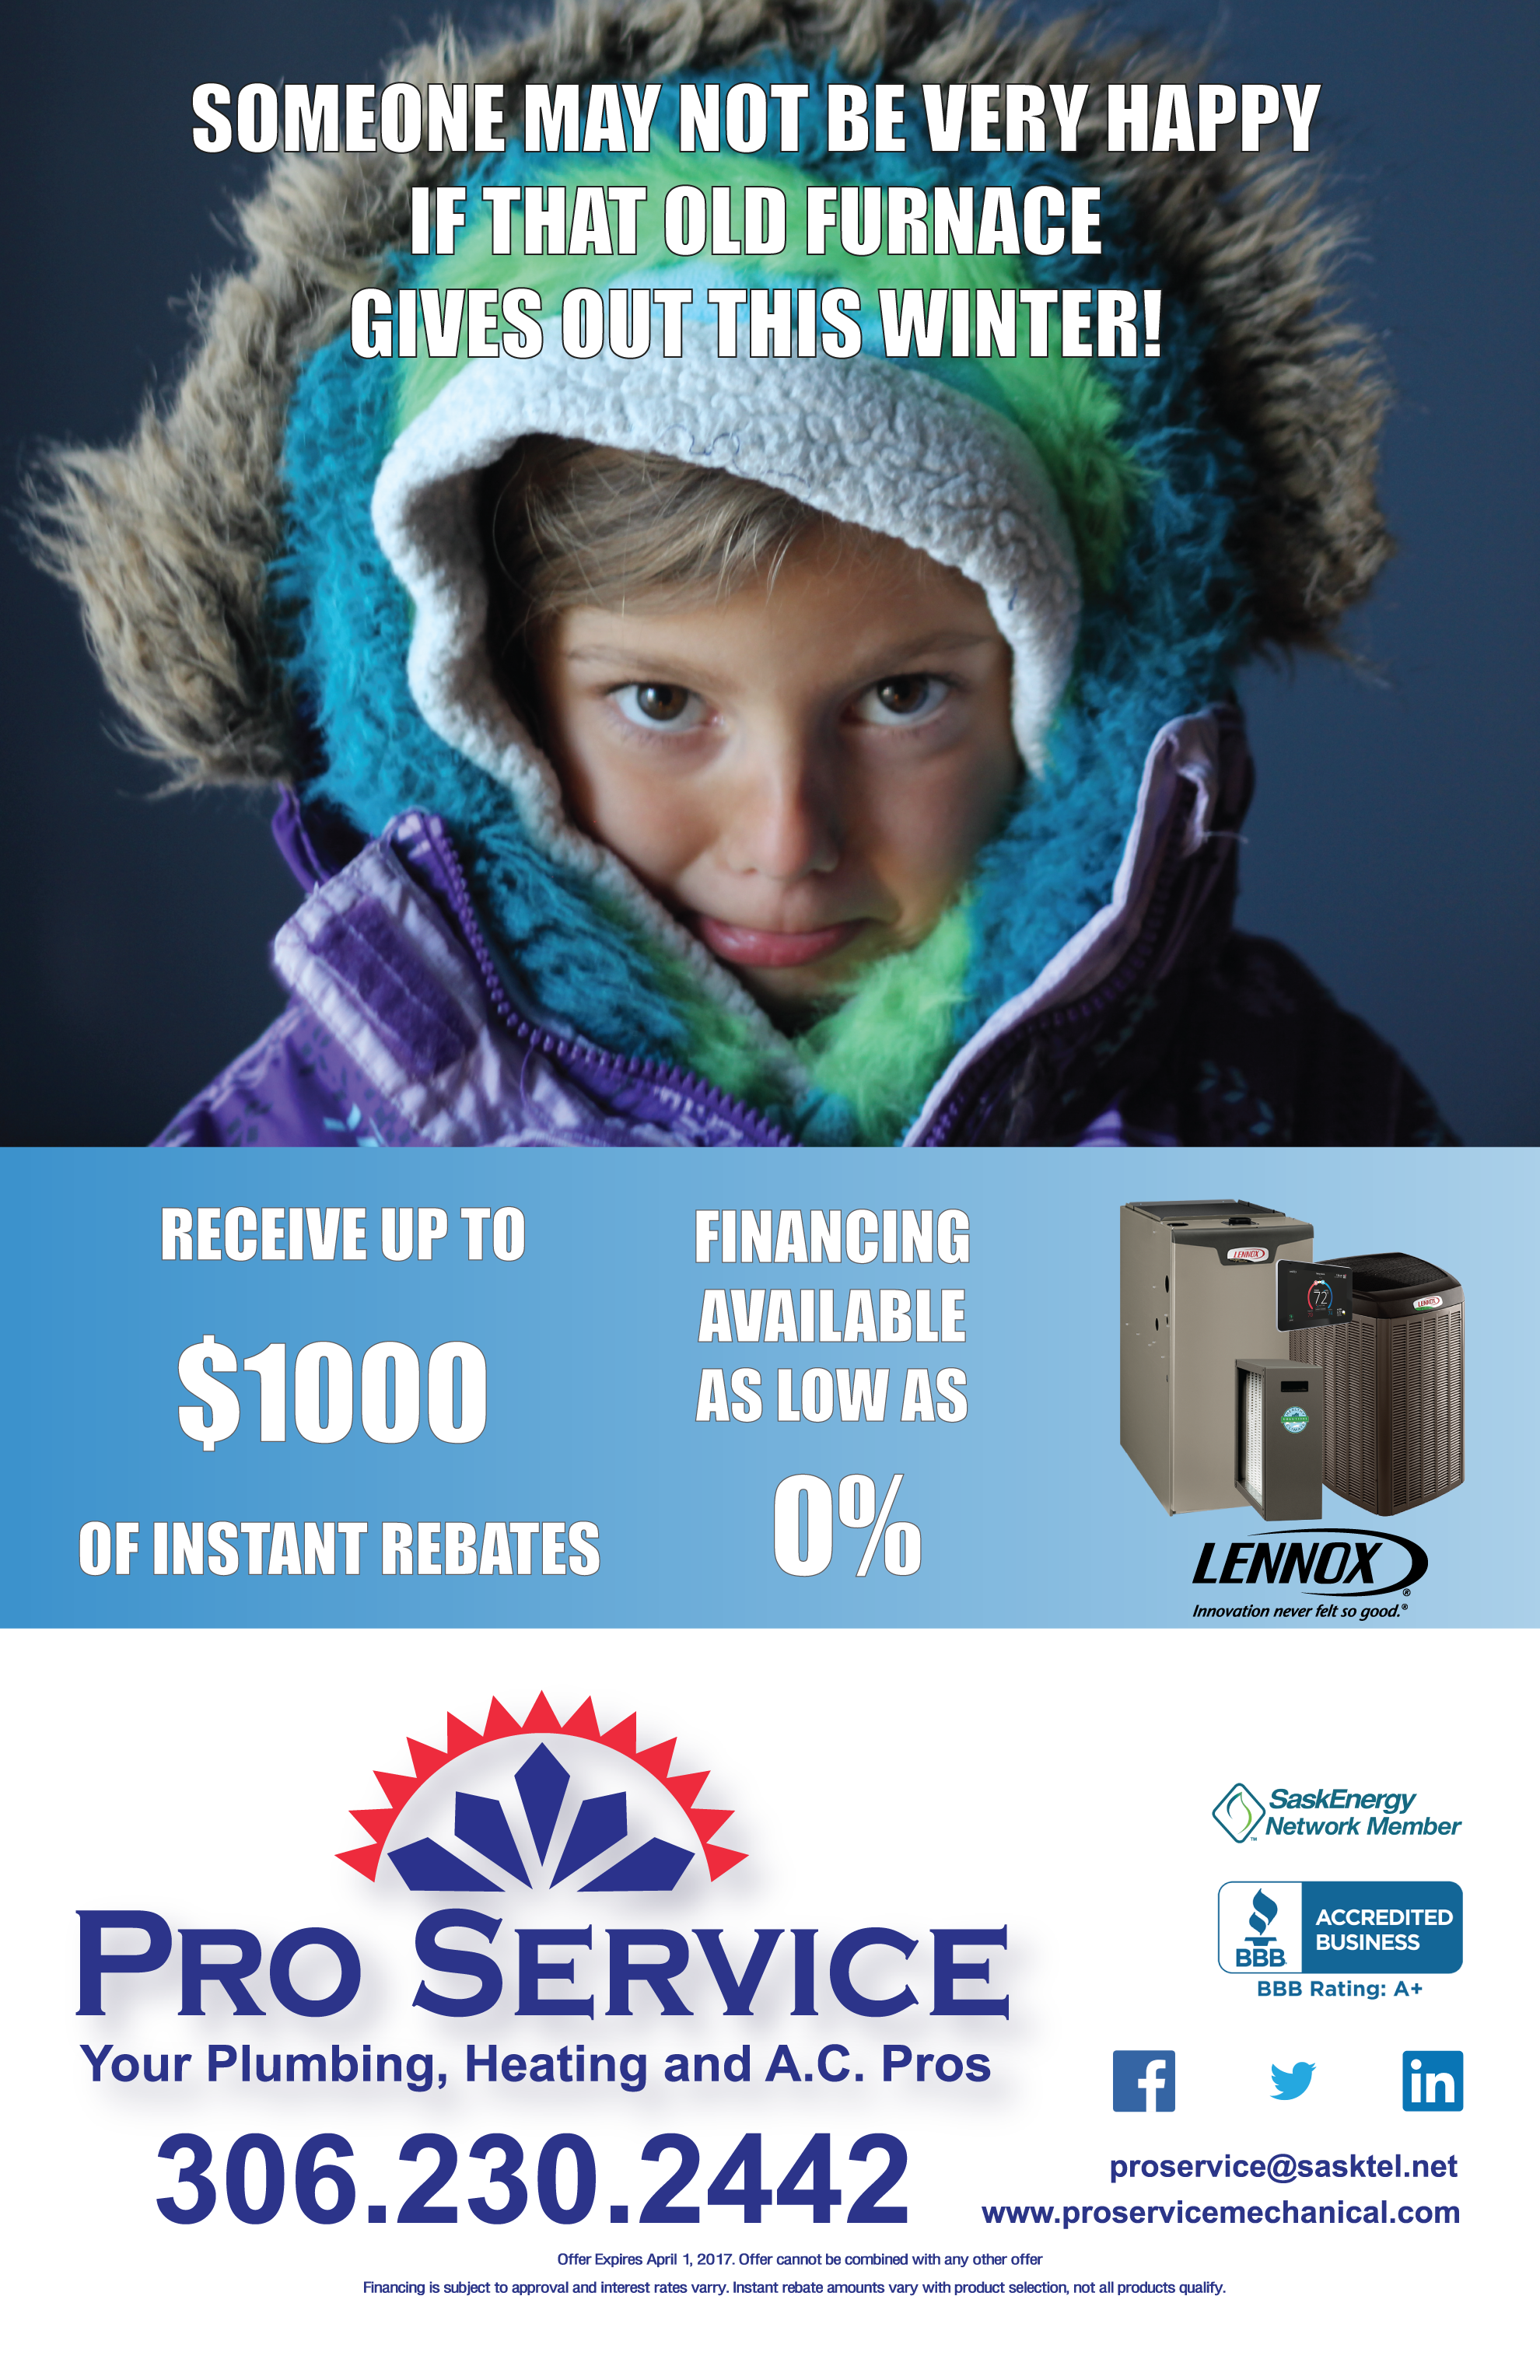 Image of flyer for furnace installation rebate offer by Pro Service